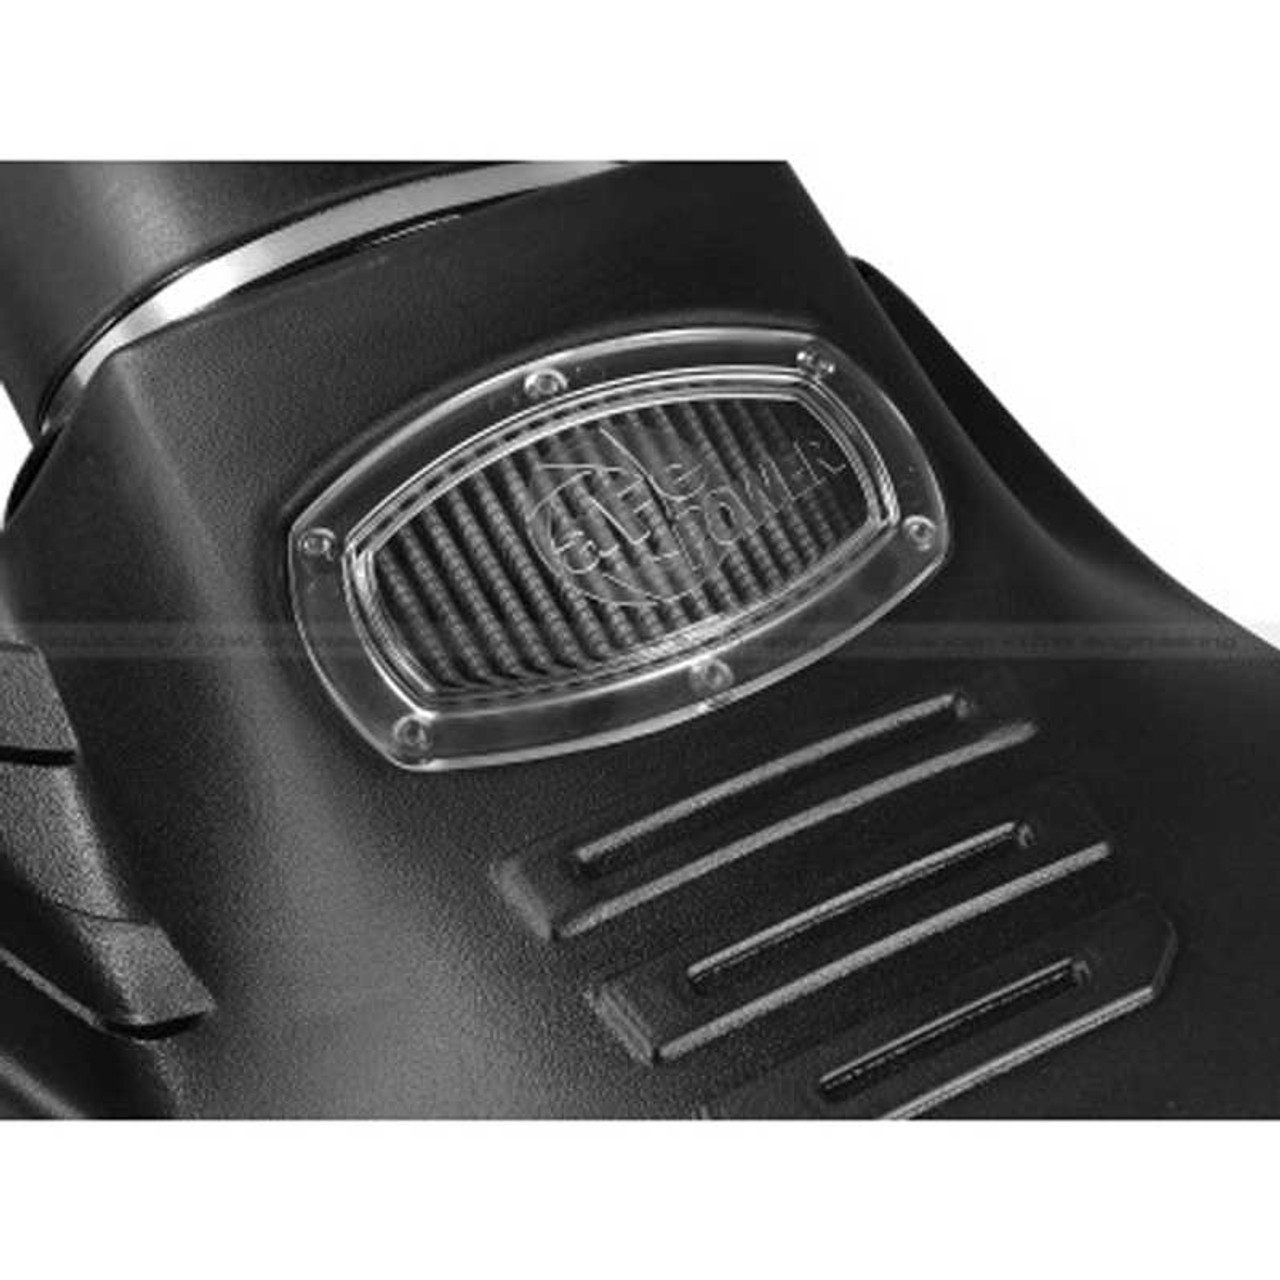 51-73114 - AFE POWER AIR INTAKE DRY STAGE 2 MOMENTUM GT PRO FOR FORD F-150 2015-2016 5.0L V8